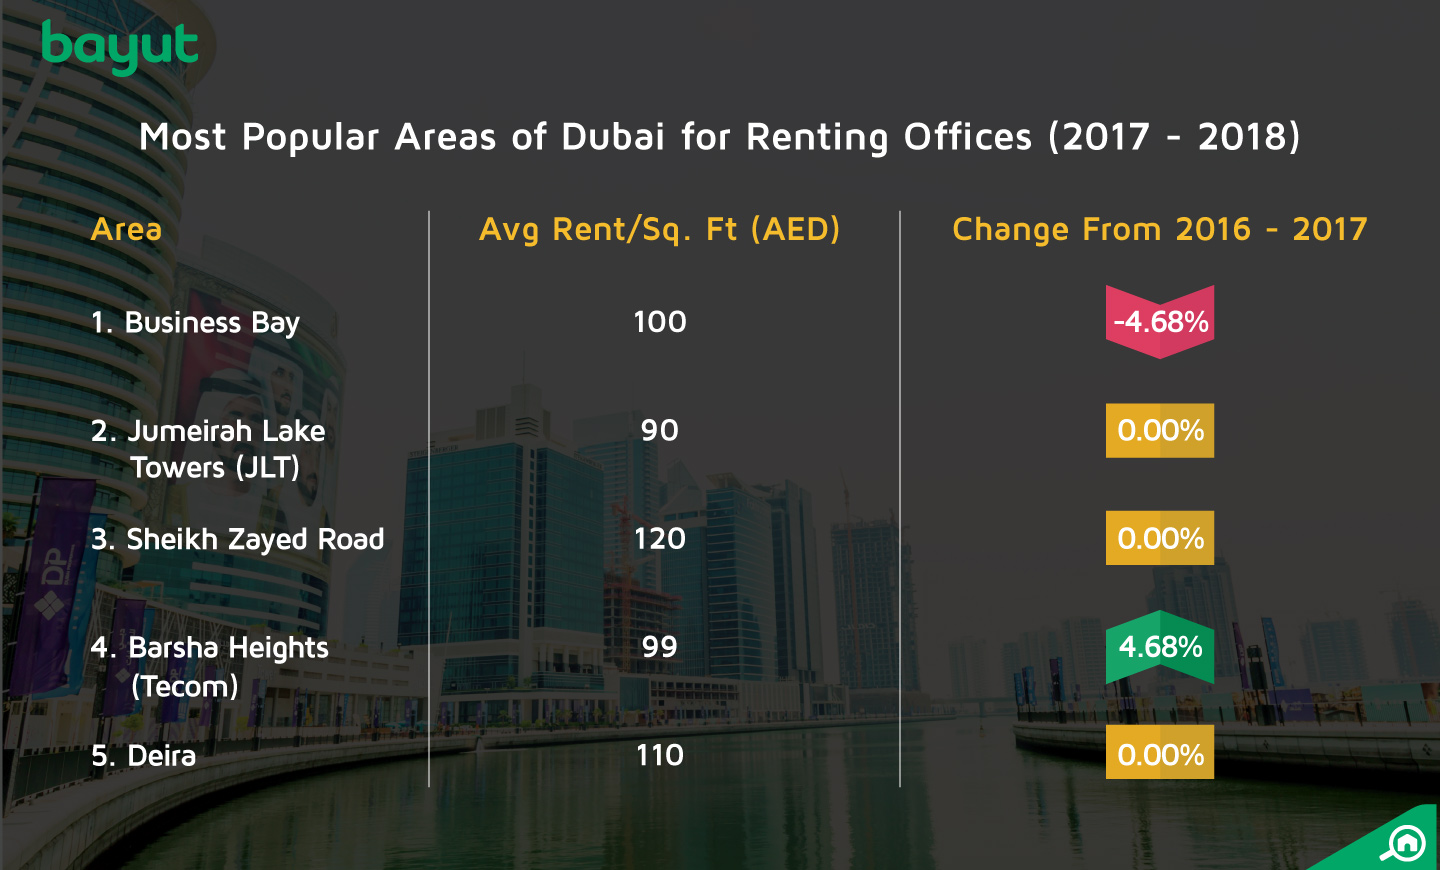 The most popular areas for renting offices in 2017 to 2018 in Dubai